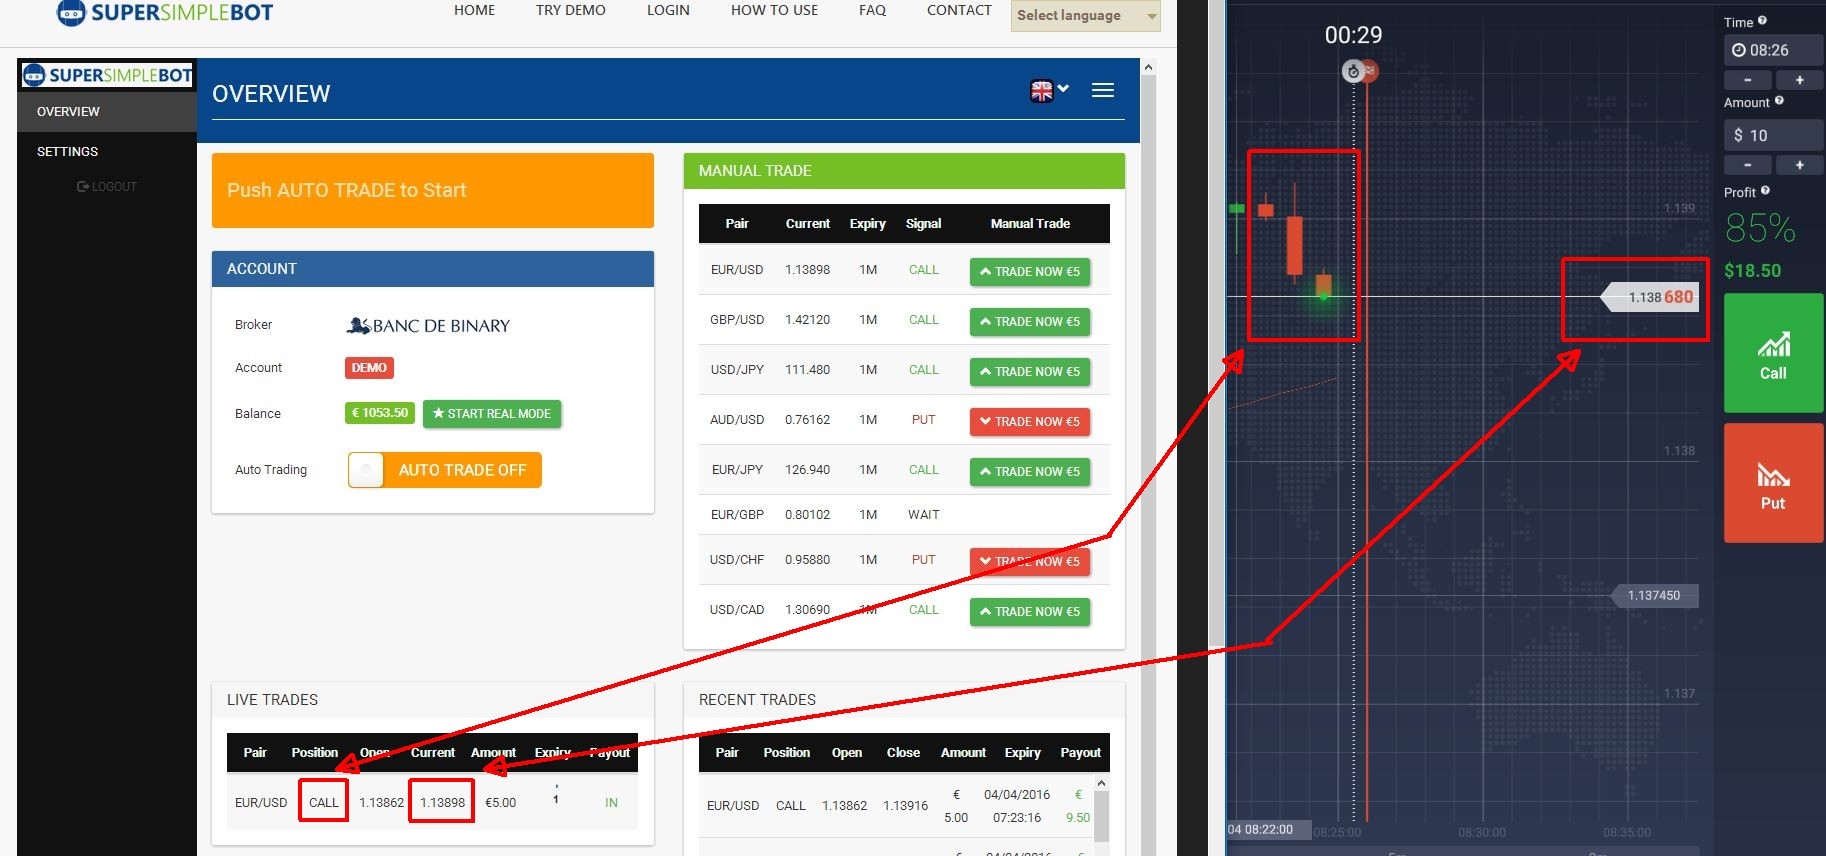 Best binary option broker in nigeria 2020